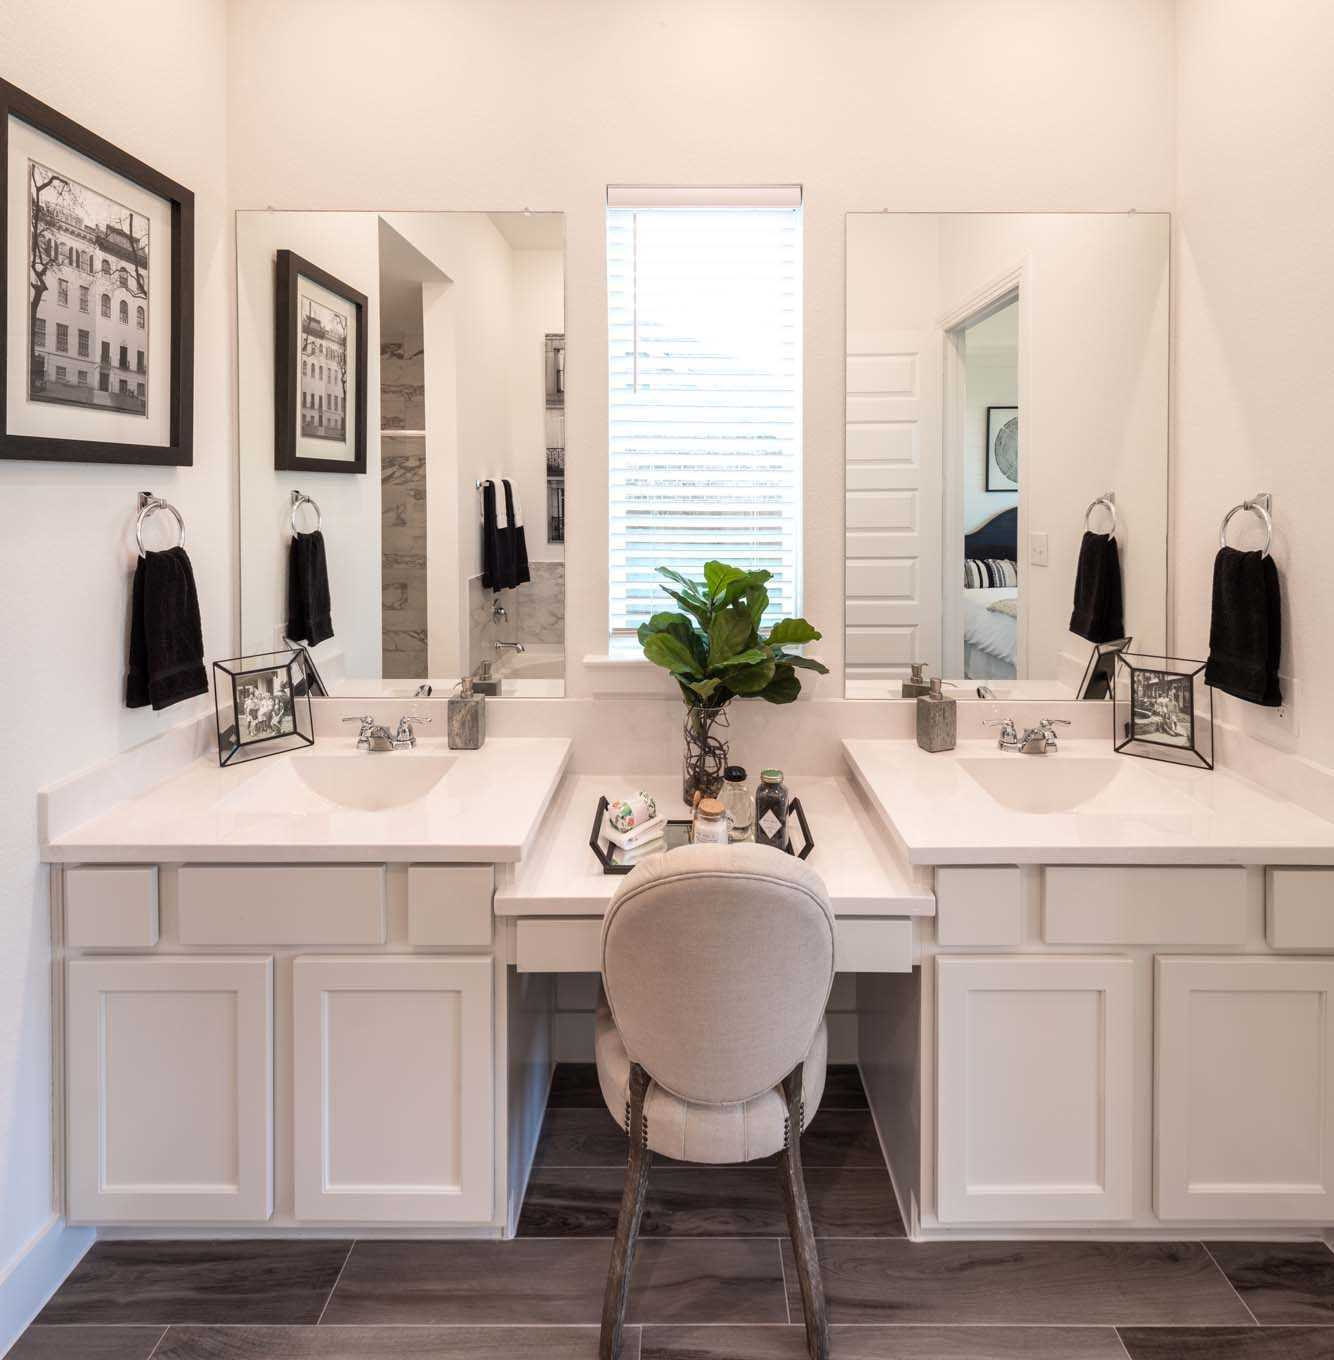 Bathroom featured in the Plan Ashwood By Highland Homes in Houston, TX